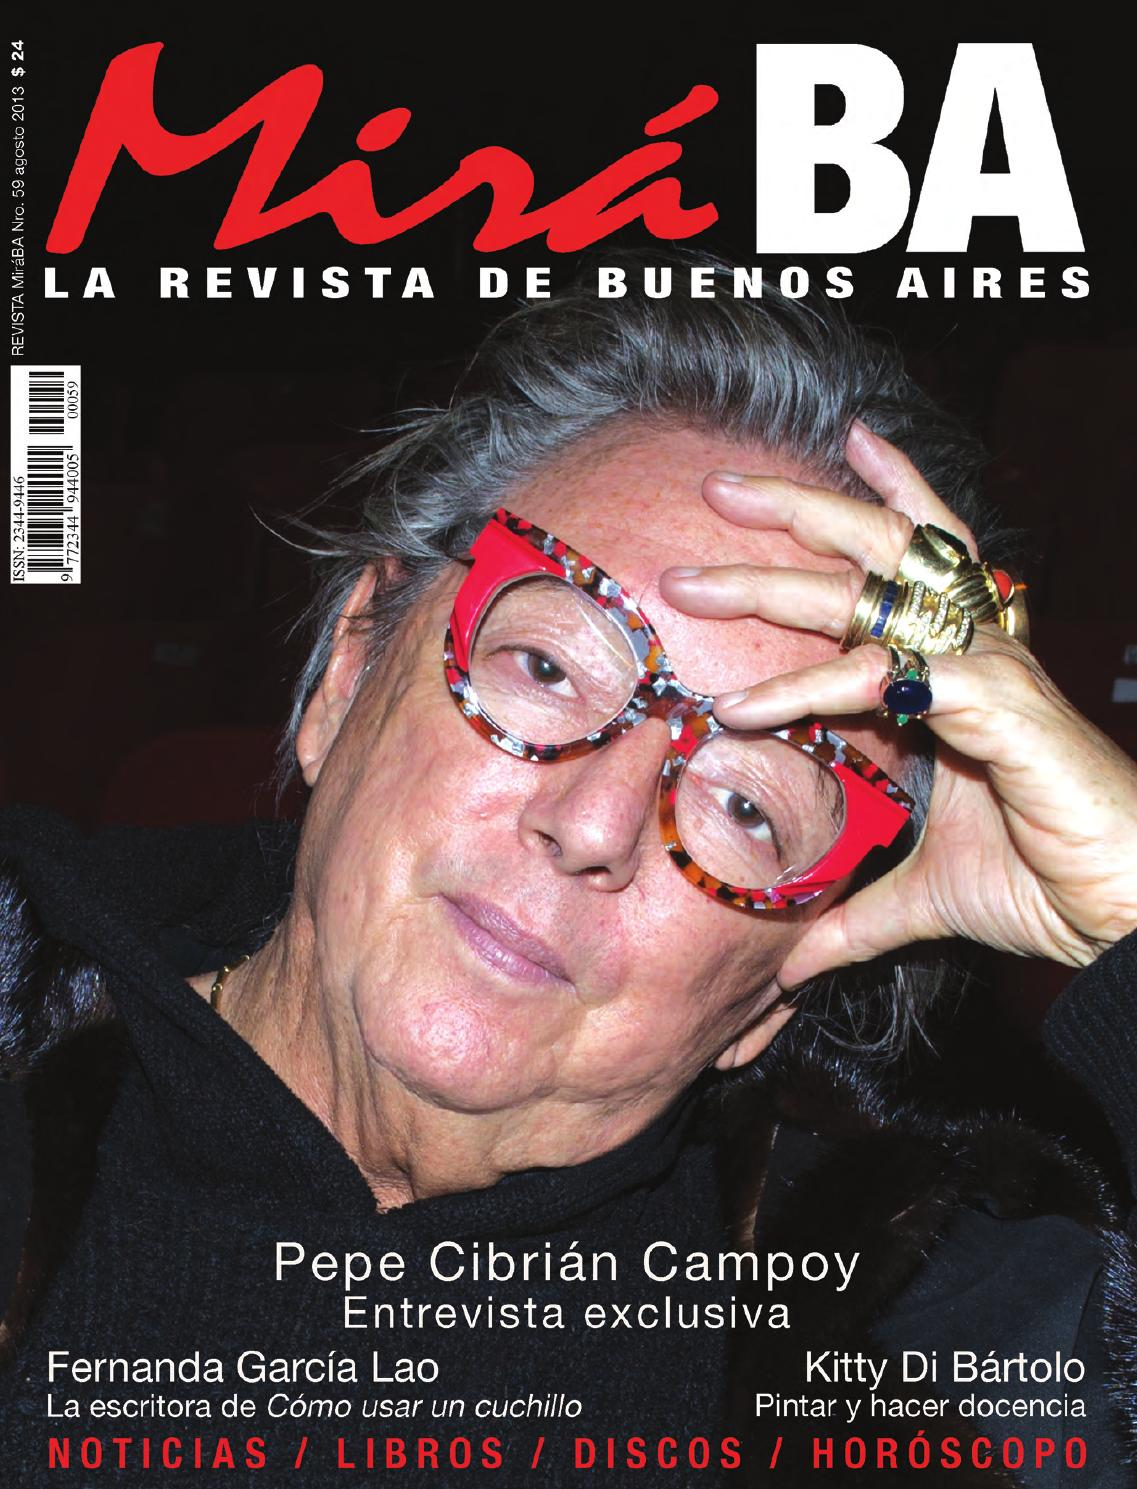 Revista MiráBA 59 by EDIPROM - issuu